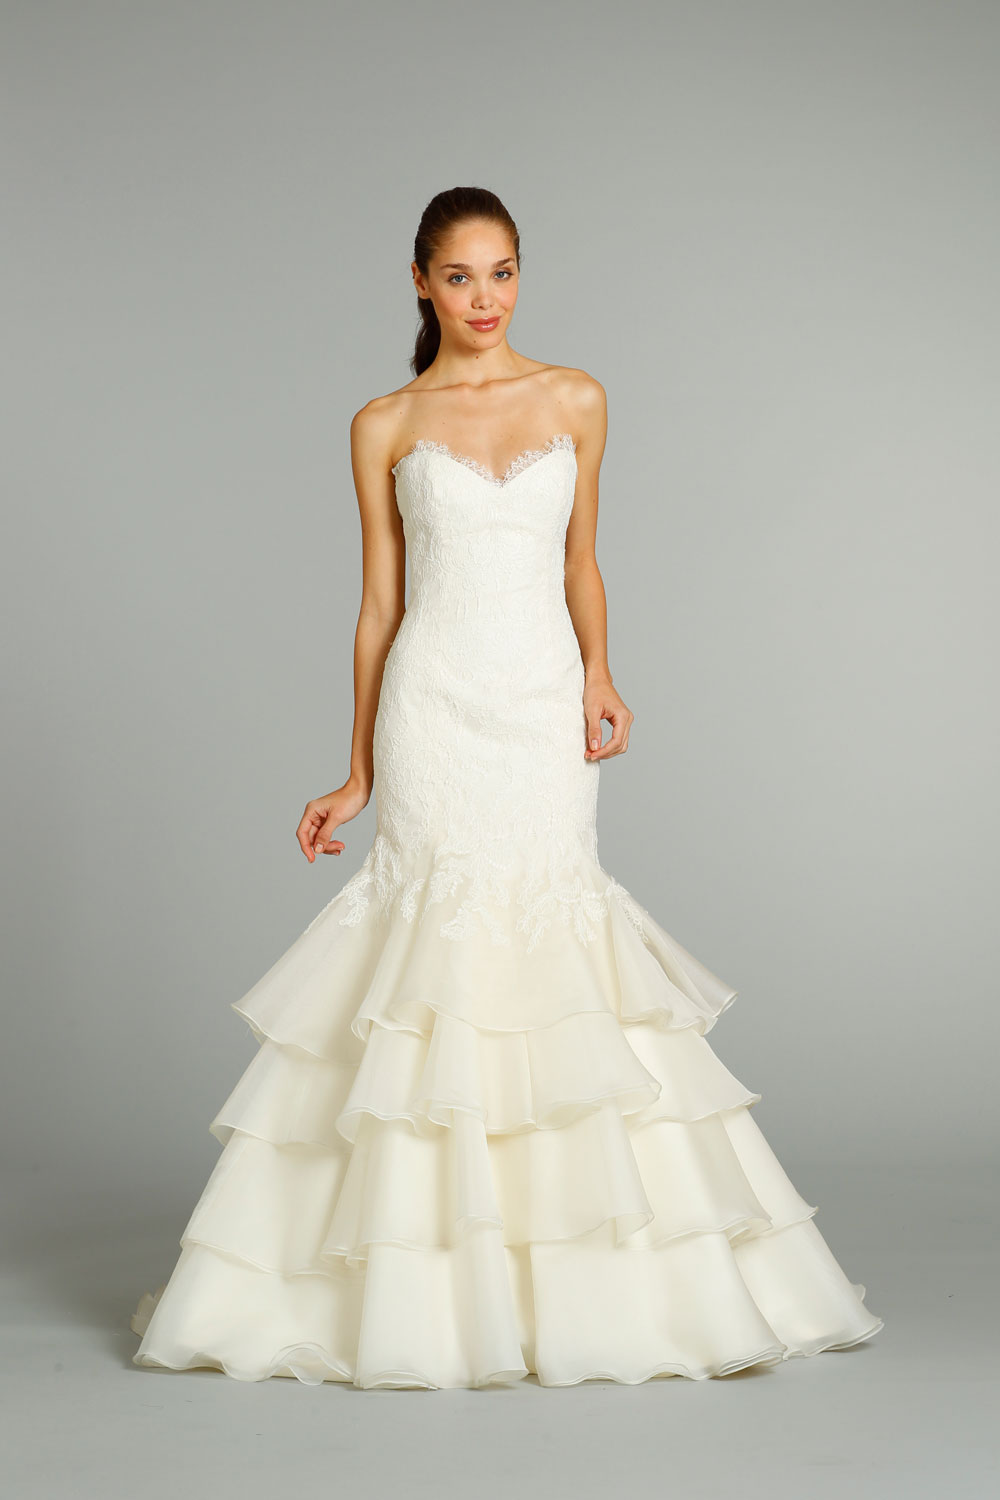 Fall-2012-wedding-dress-jim-hjelm-bridal-gowns-8255.original